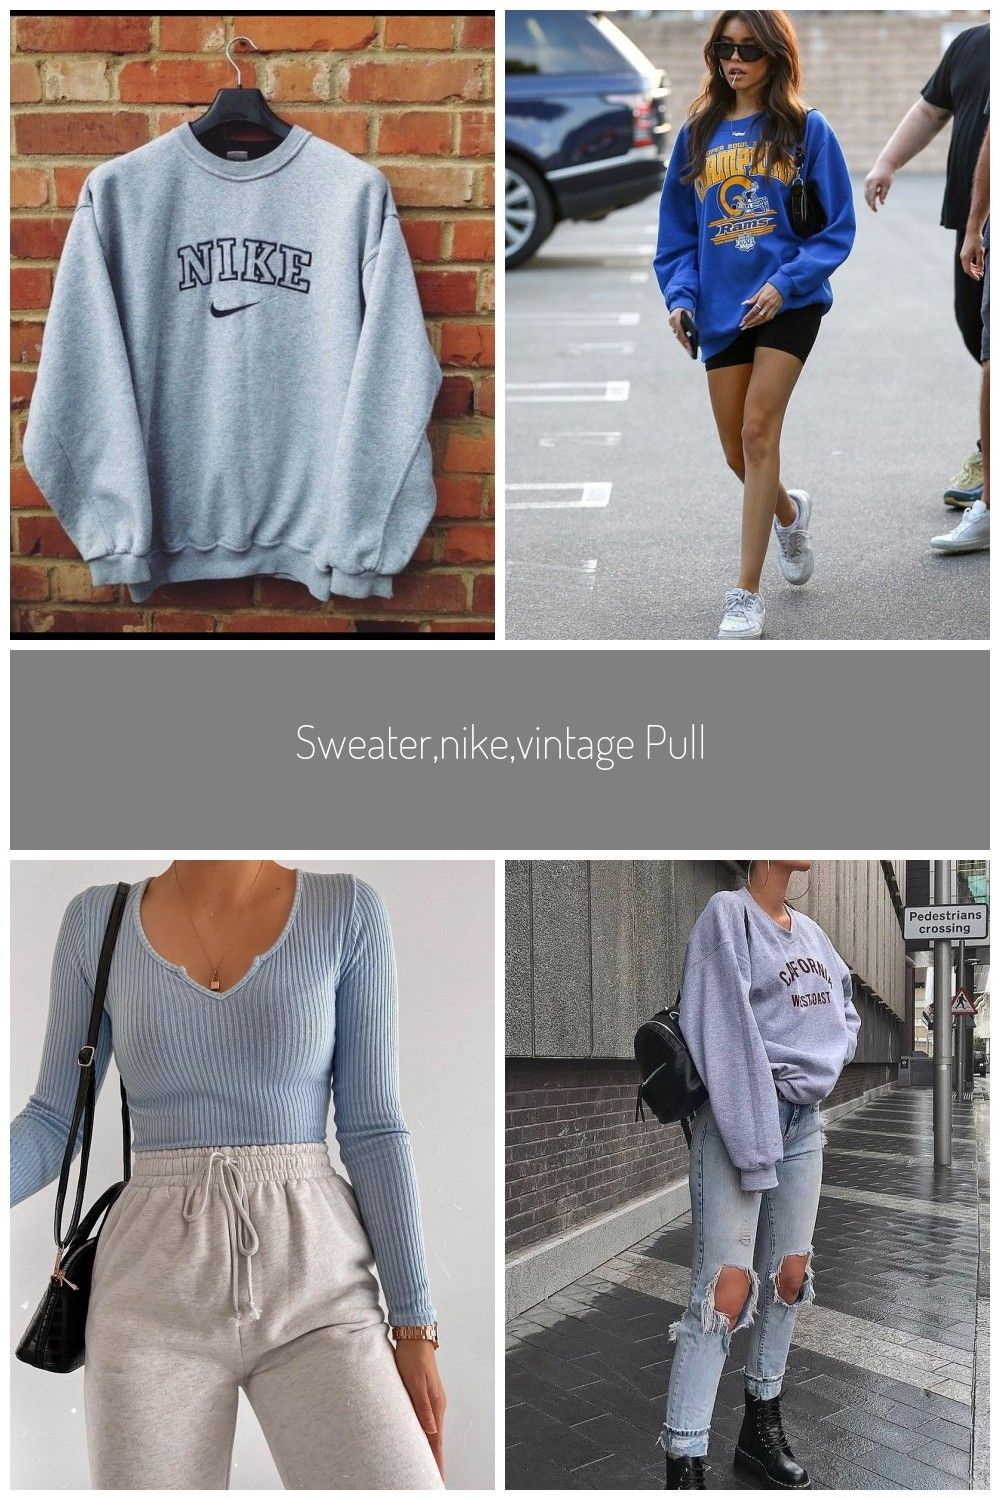 Sweater Nike Vintage Pullover Oversized Sweater Sweat Shirt Winter Outfits Fall Outfits Vintage 90s Style Grey Sweat S In 2020 Nike Sweater Fall Outfits Winter Outfits